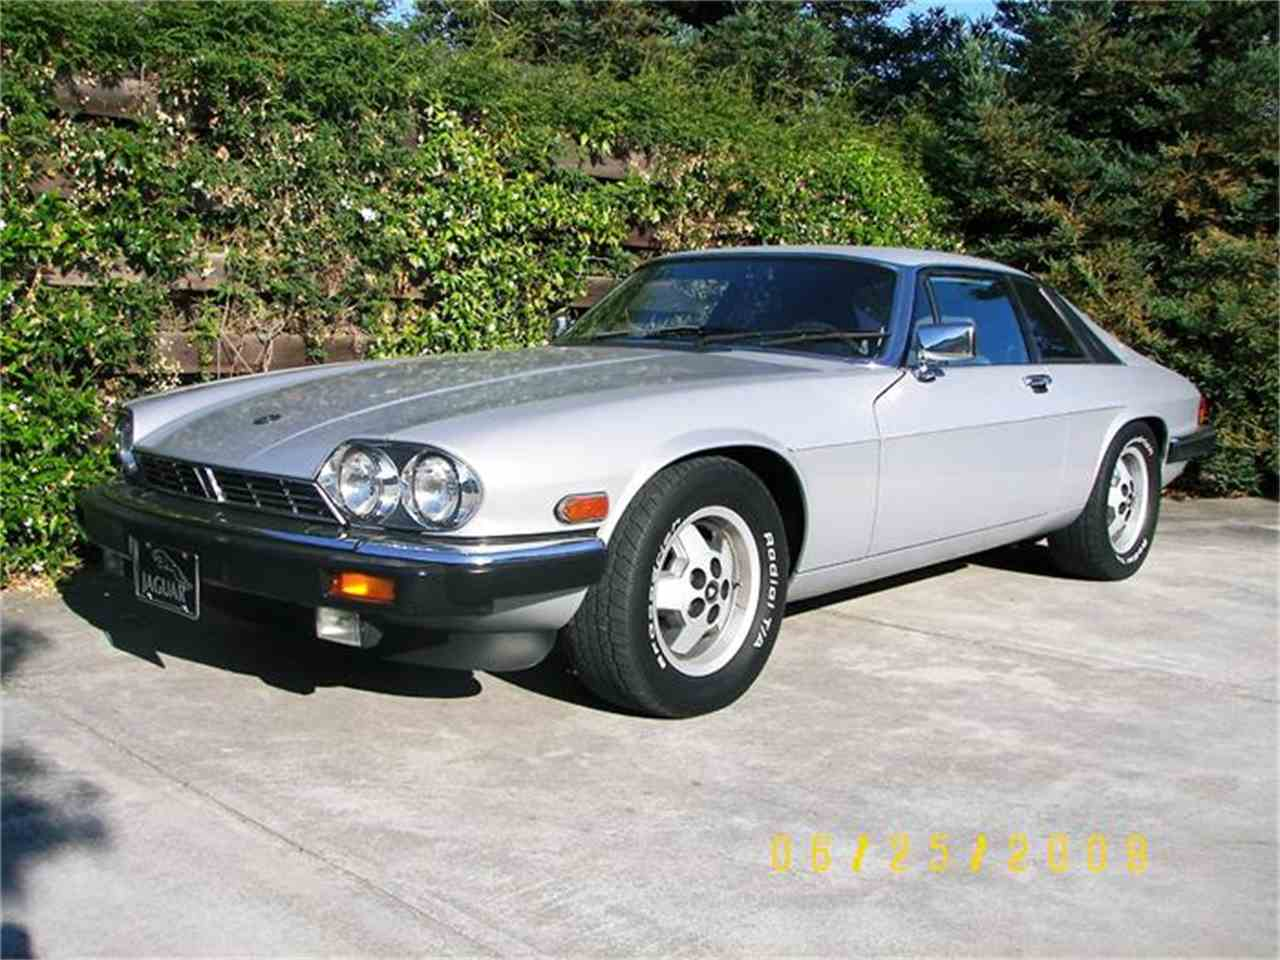 Large Picture of '85 XJS - 2YG4